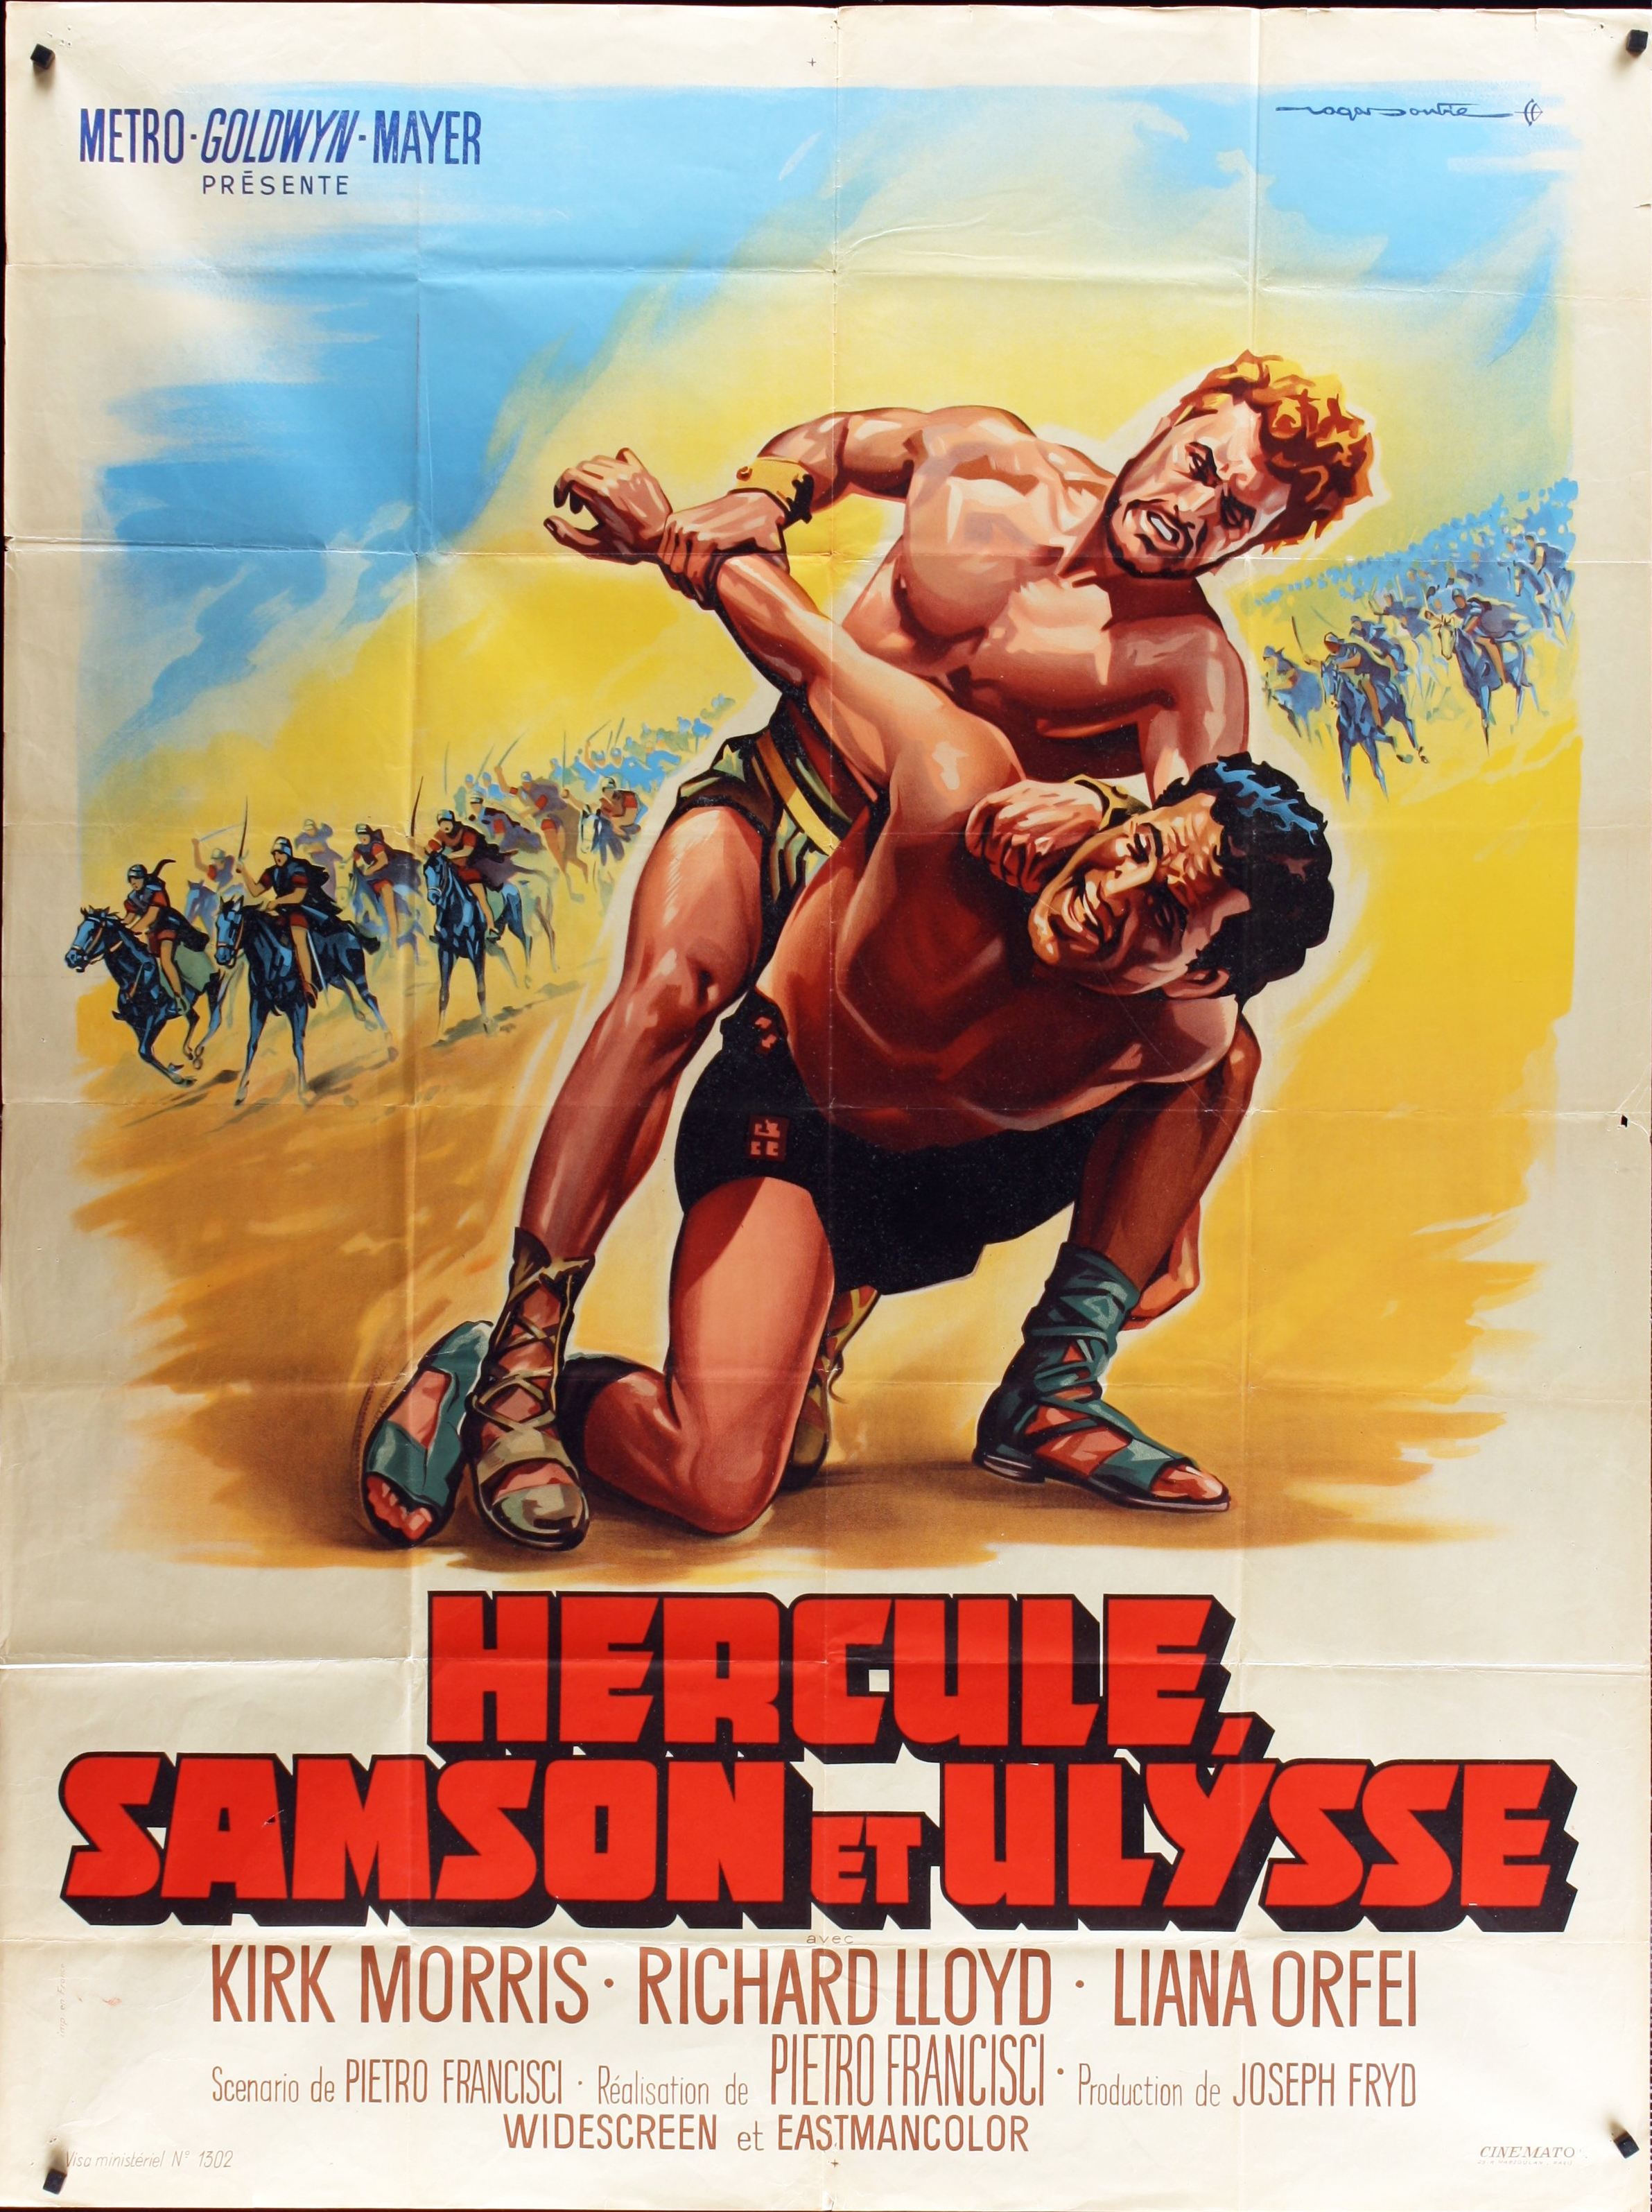 Greatest Adventure Samson Delilah Movie free download HD 720p